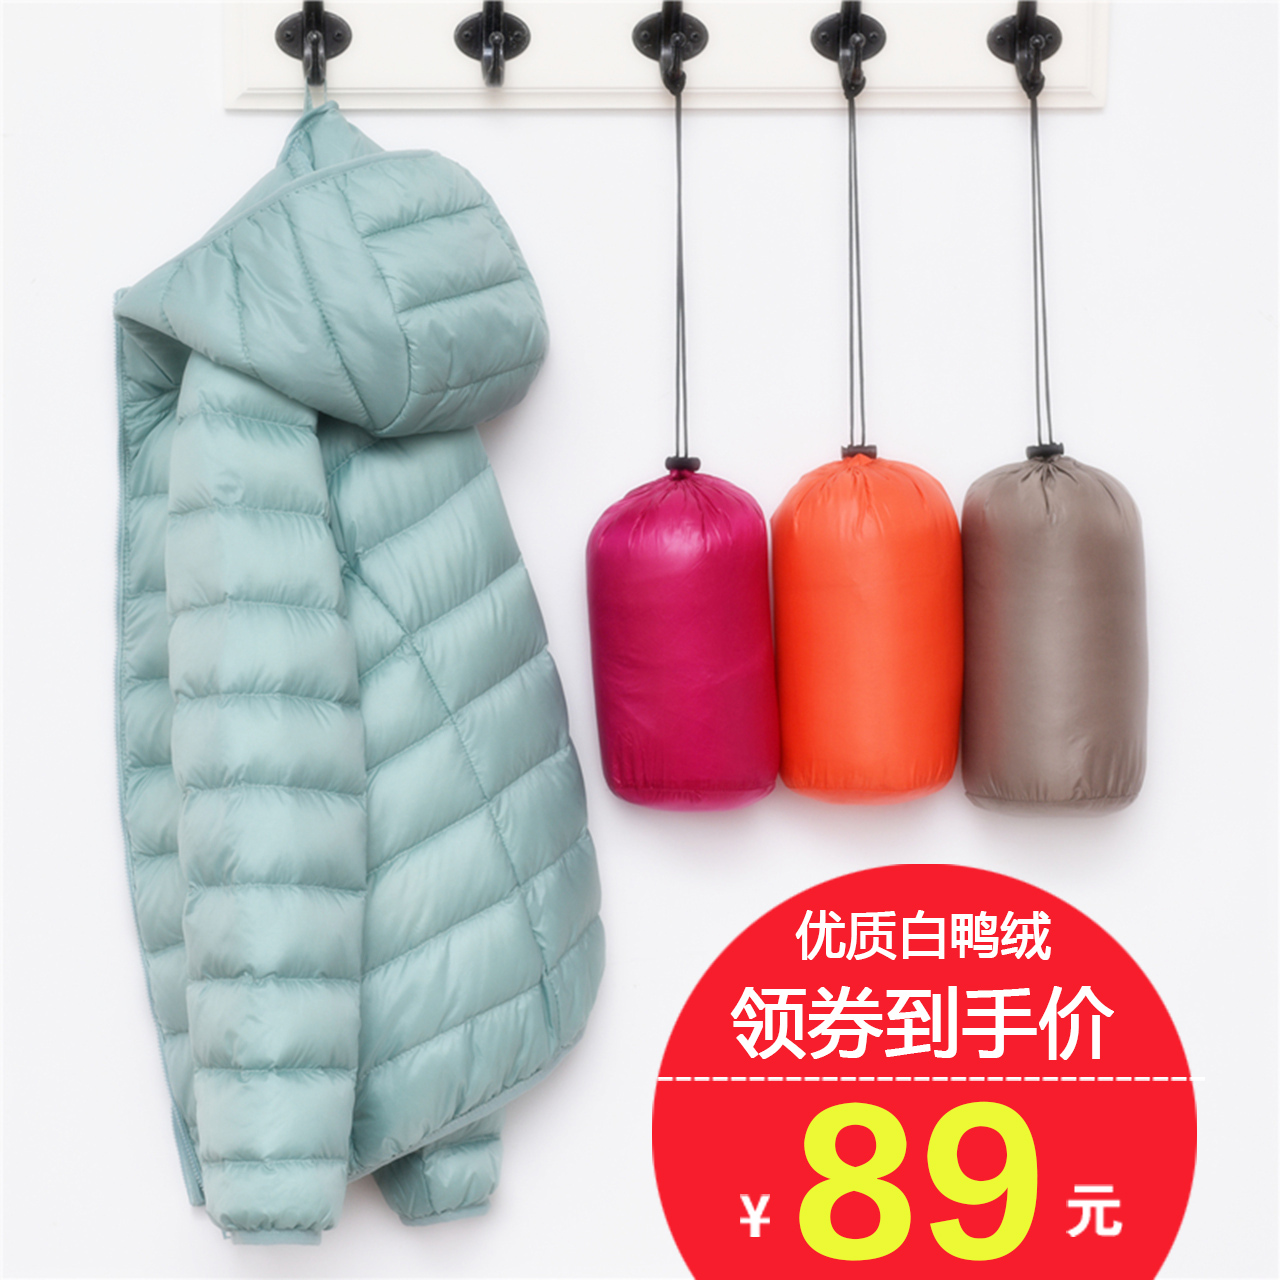 Light down jacket womens 2020 new short collar hood fashion slim autumn and winter size jacket anti-season promotion